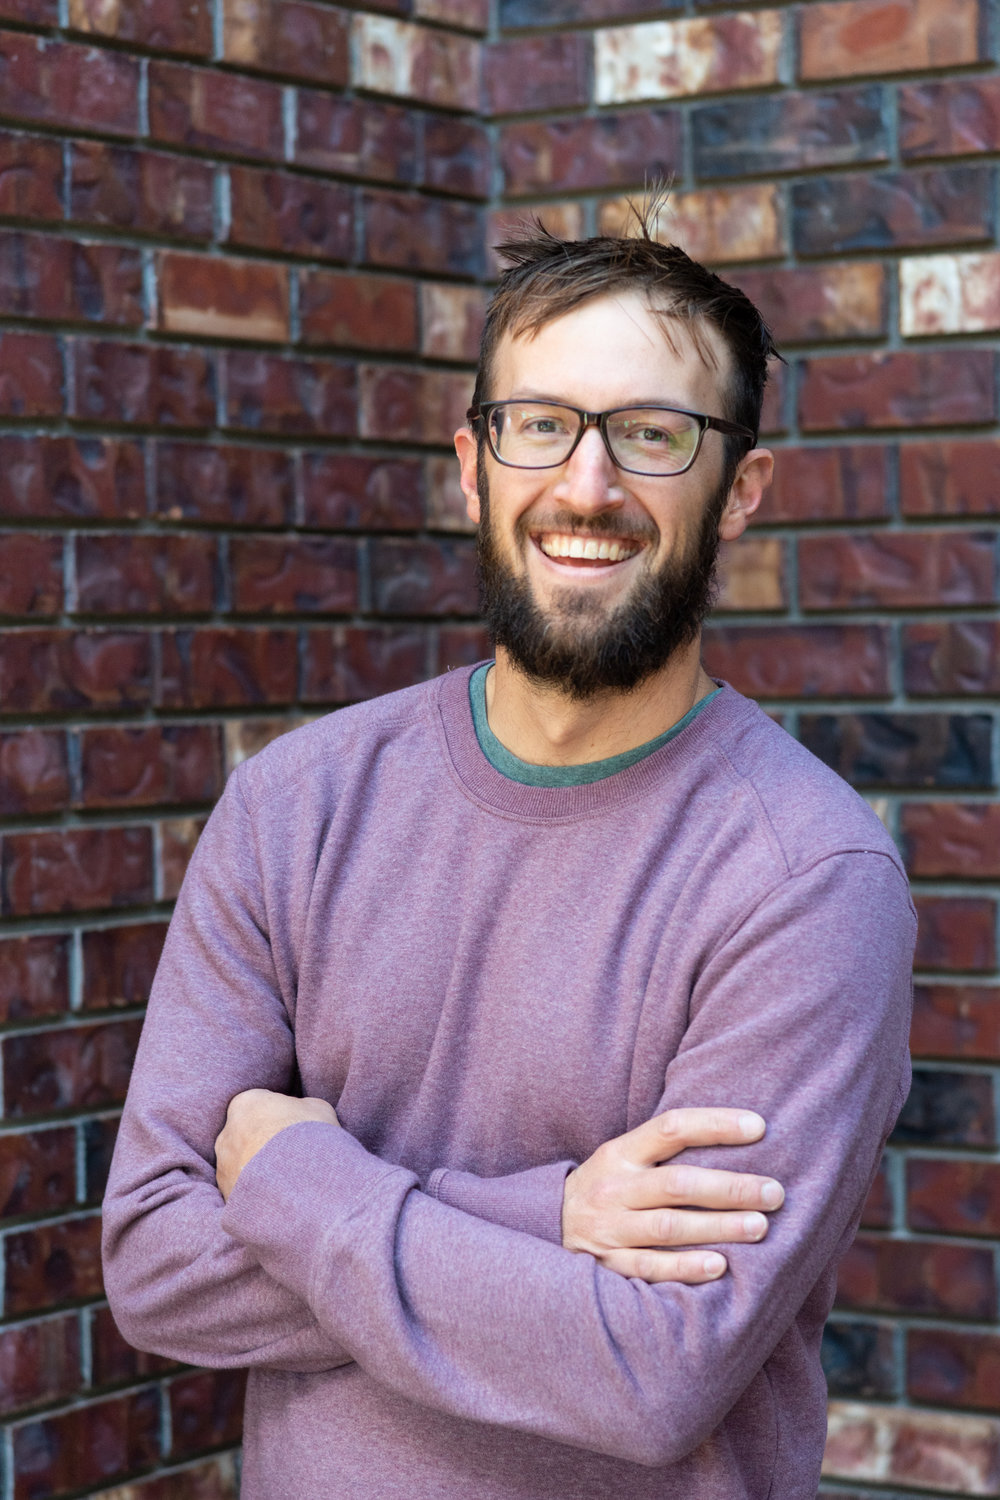 Paul Trendler - FOUNDER & OPERATIONS     Bend, OR    Paul's love for food began with his family, who center their time and experiences together around seasonal flavors and unique culinary opportunities. When asked for travel advice, the Trendler's will base all of their recommendations and fond memories of places around food. He too holds nutrition and whole foods at the utmost priority, to properly refuel his psyche, enthusiasm, energy, and motivation for connecting with people, travel, and outdoor recreation.